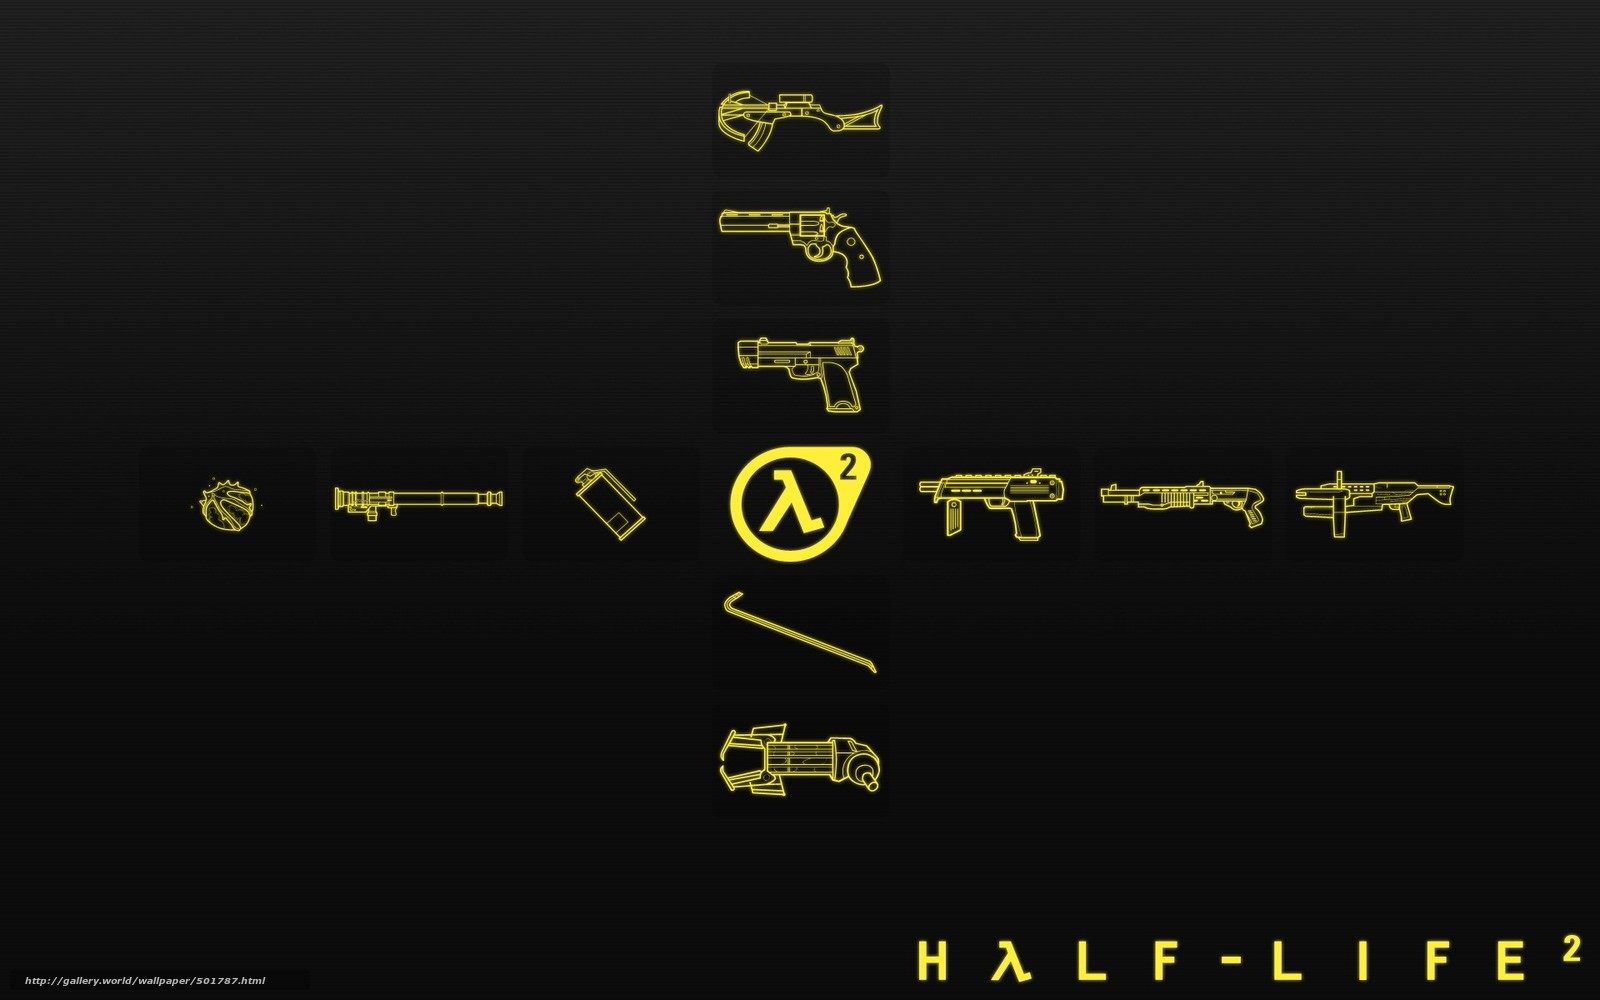 Download wallpaper half life 2 valve steam free desktop wallpaper